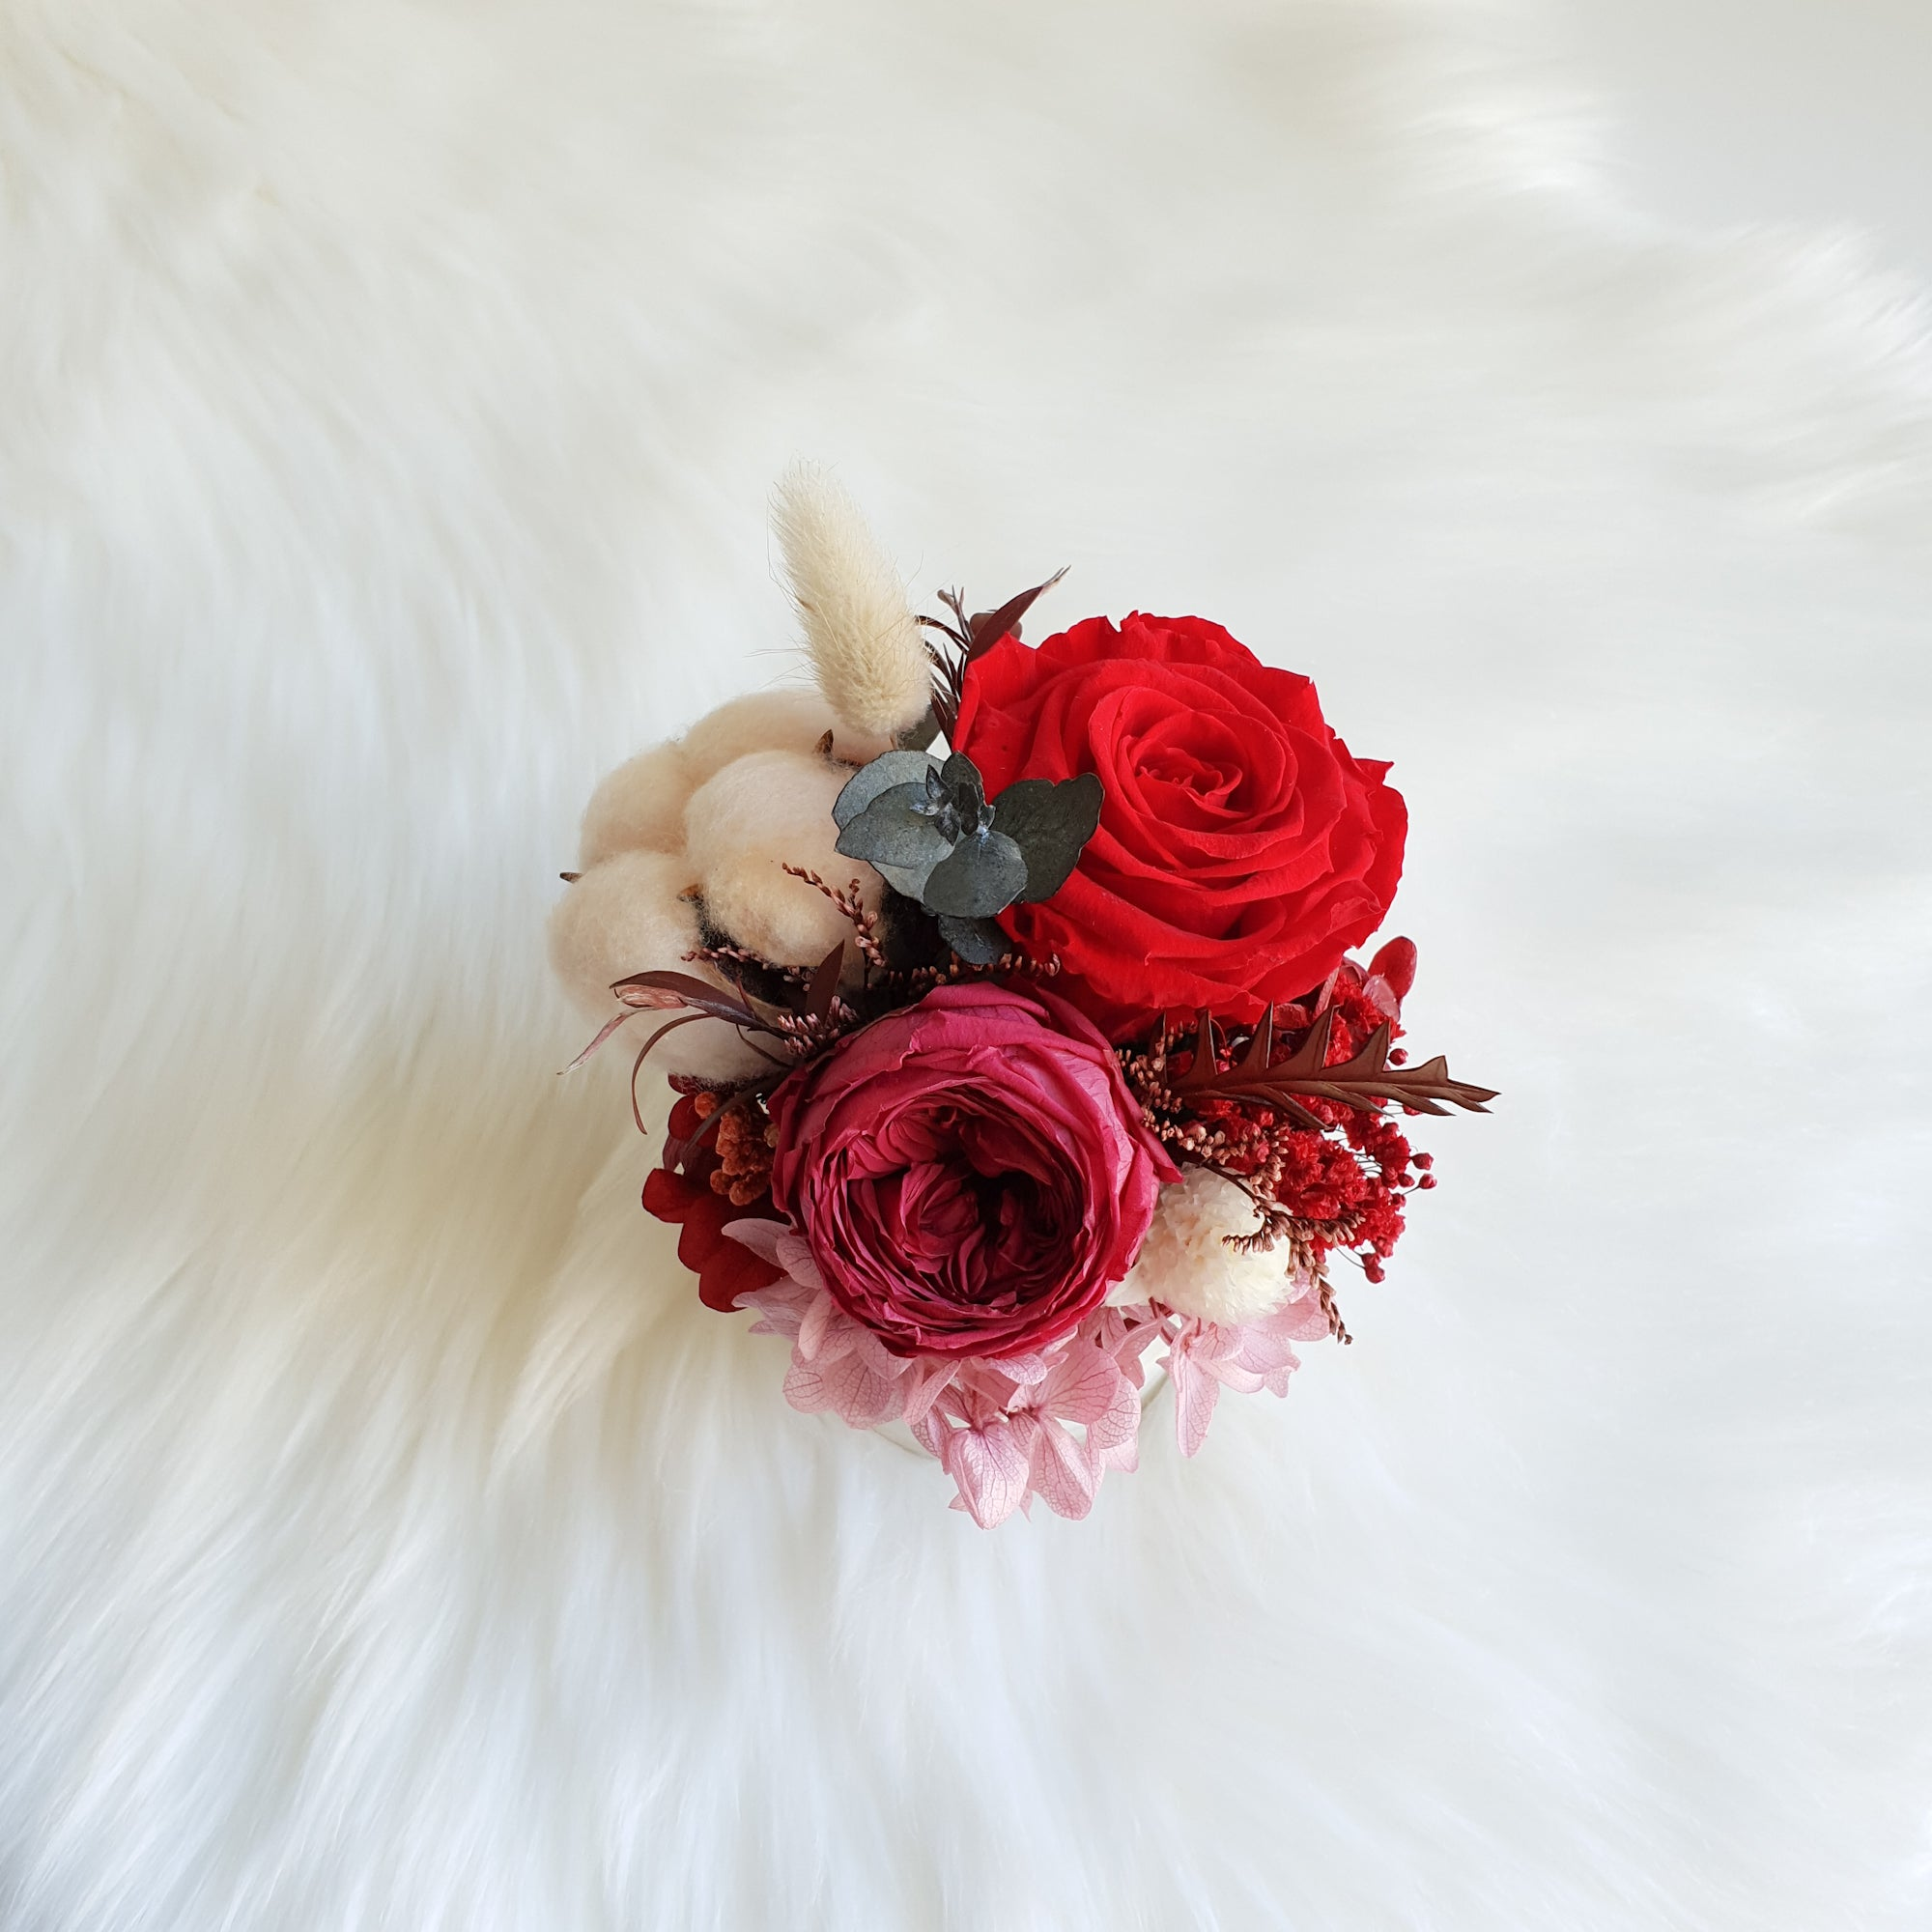 preserved flowers sydney, preserved roses sydney, forever roses, long lasting roses, luxury roses, infinity roses, rose box sydney, cotton